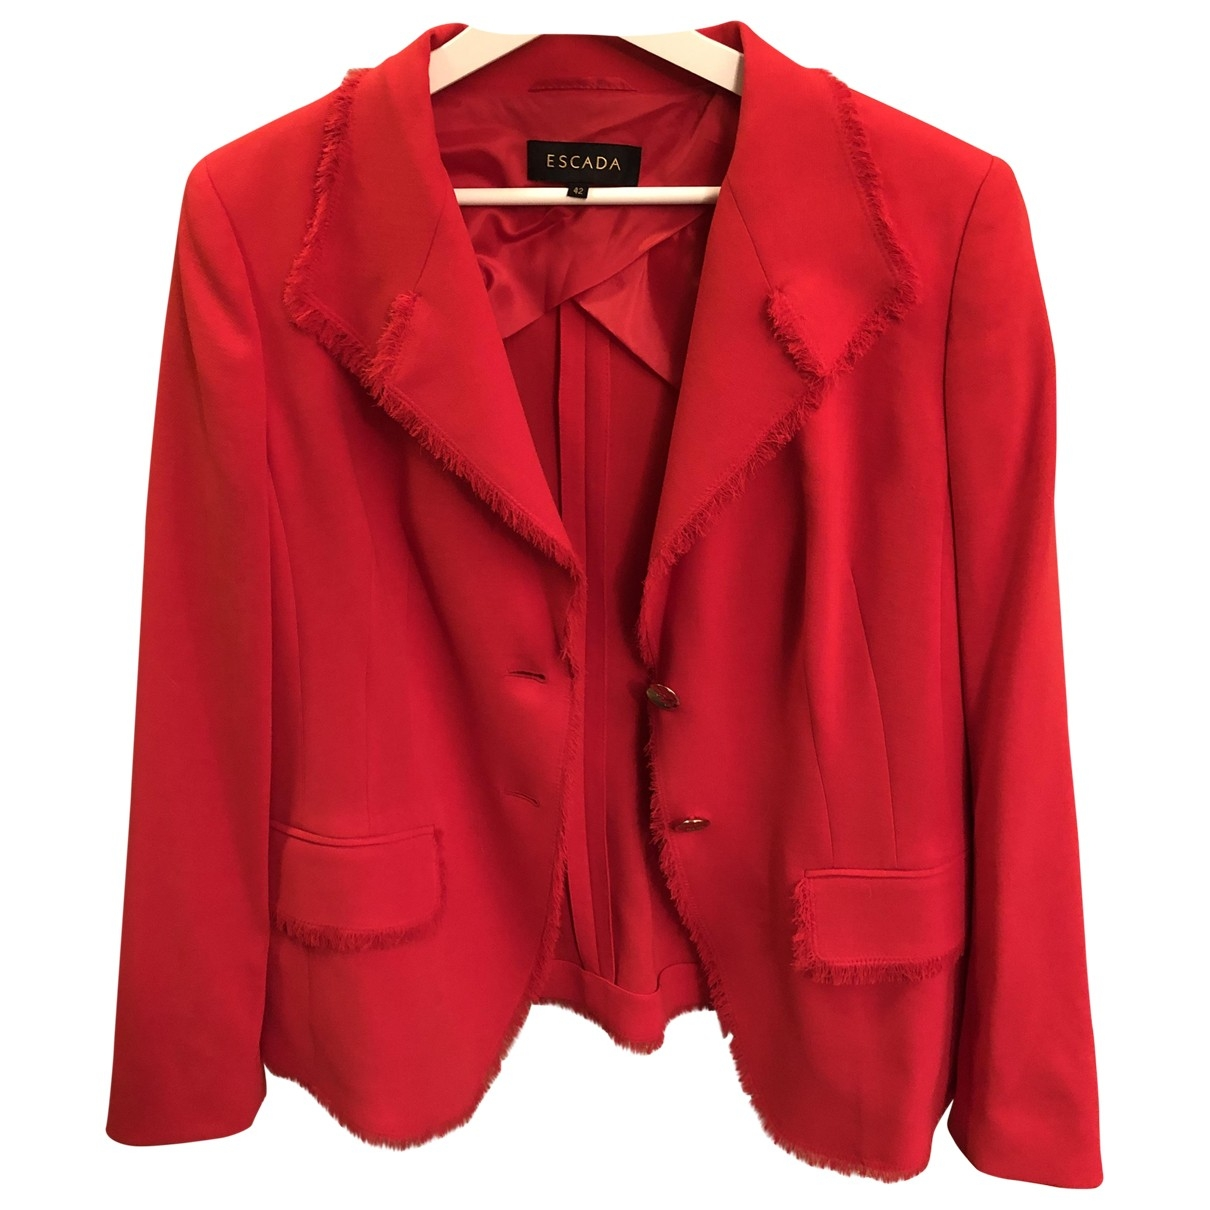 Escada \N Jacke in  Rot Wolle